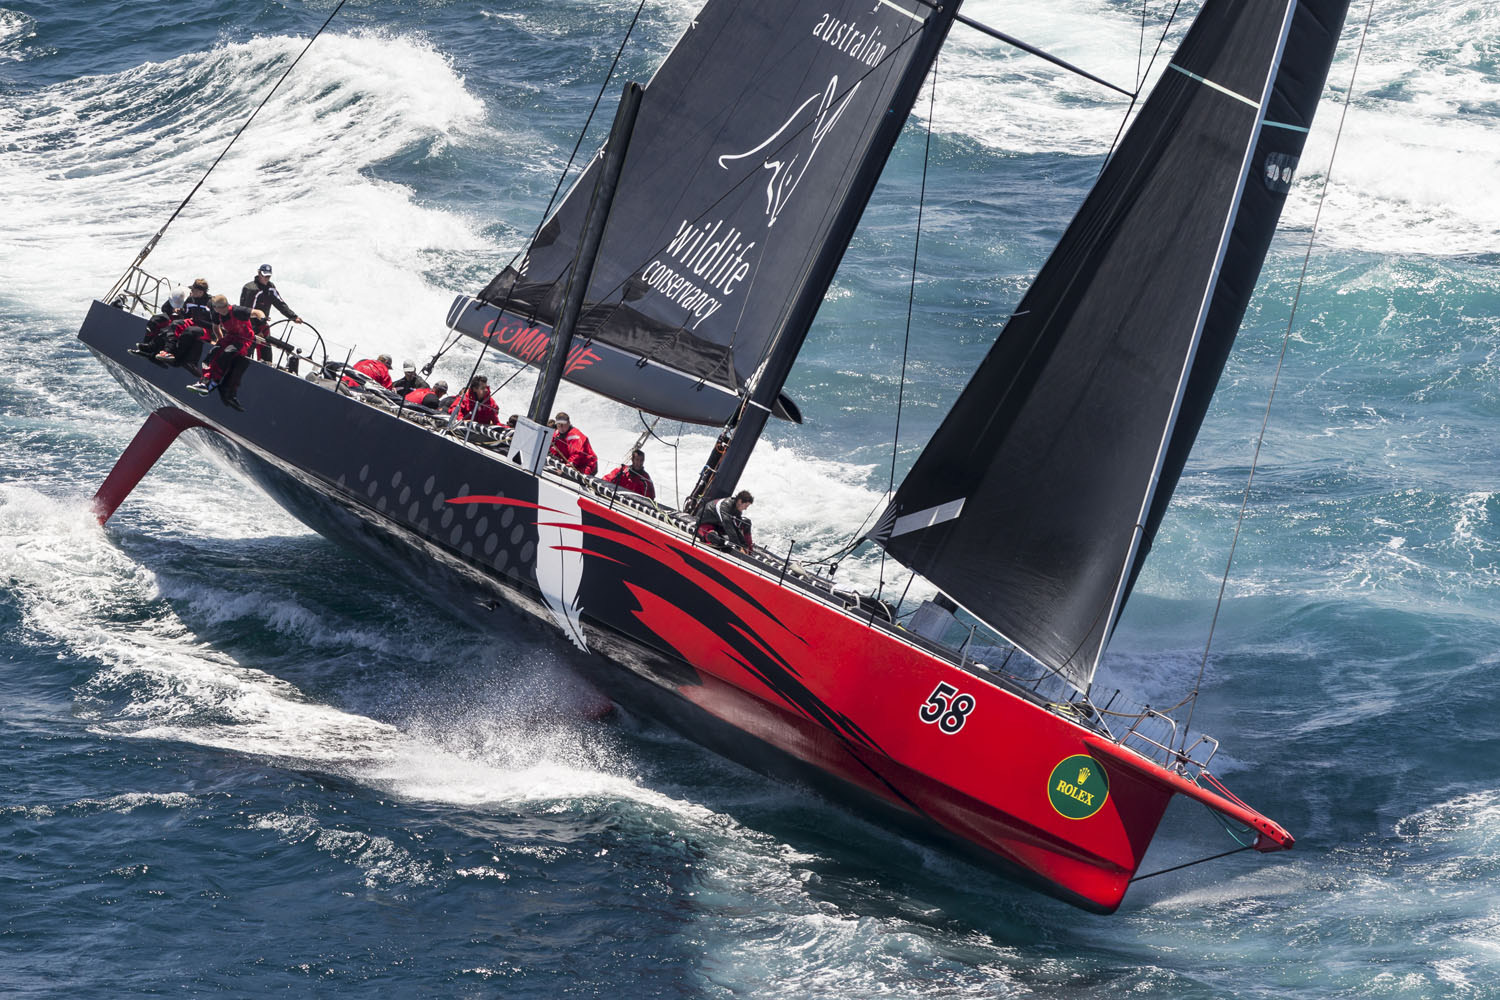 The Rolex Sydney Hobart Yacht Race The Complete 2019